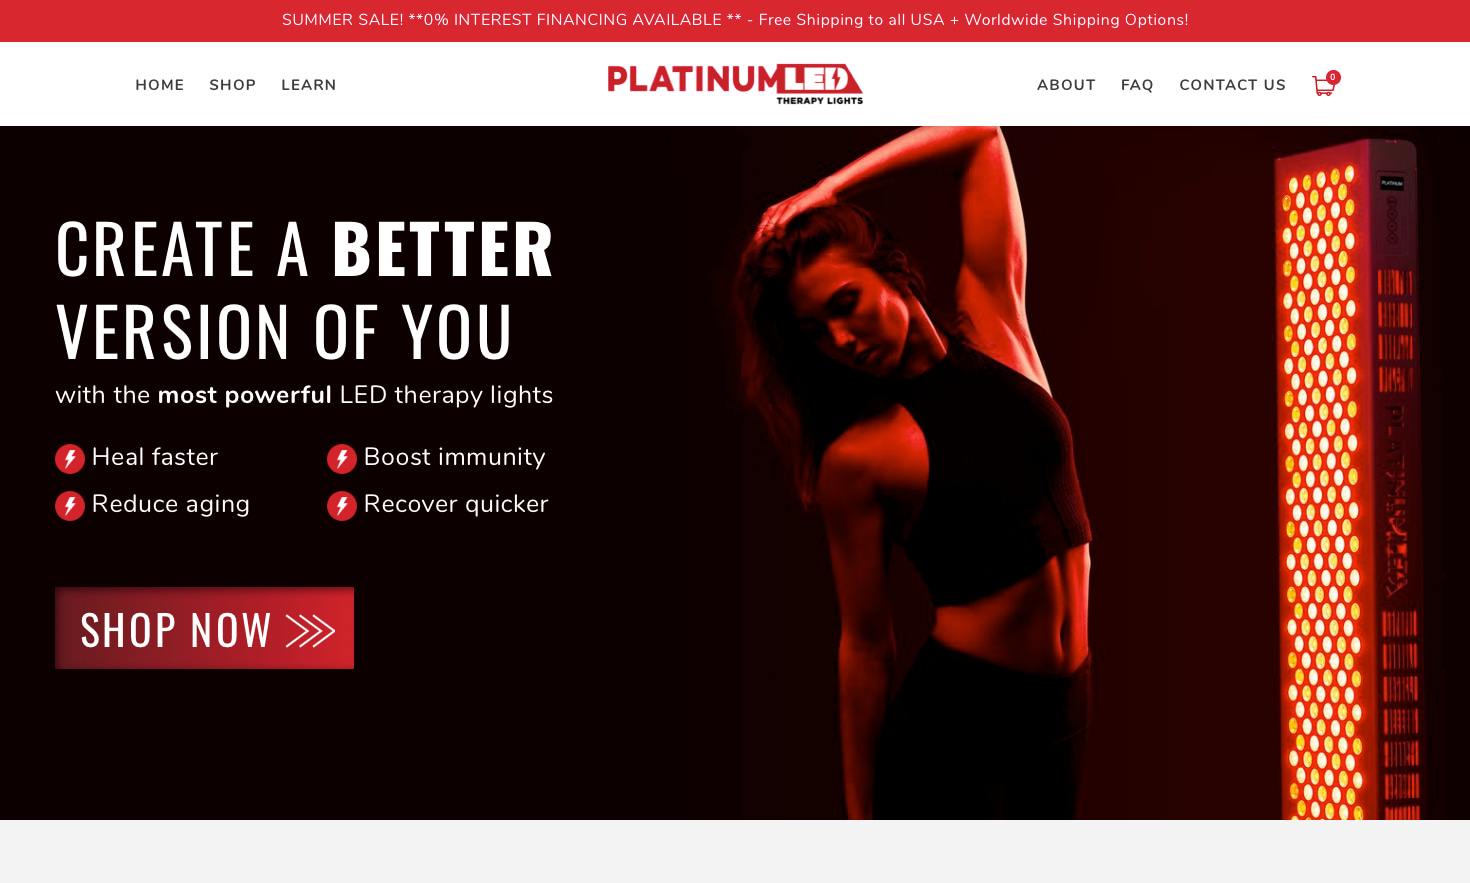 Platinum LED Therapy Lights Homepage Snapshot